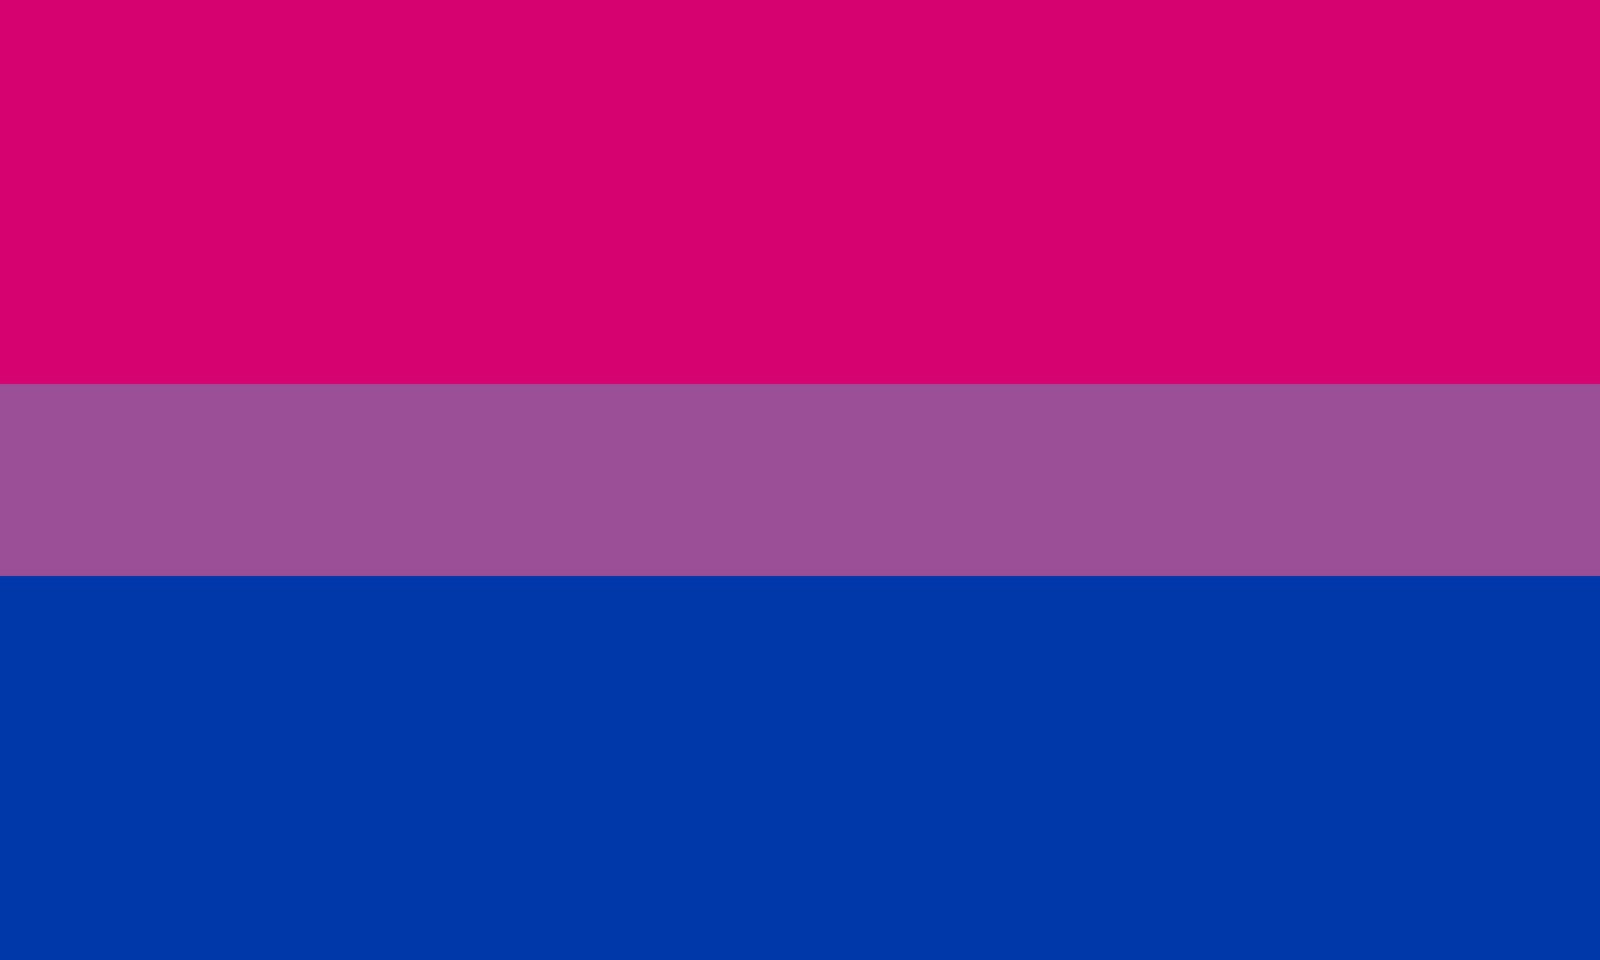 QueerEvents.ca - Queer Flags - Bisexual Flag Image